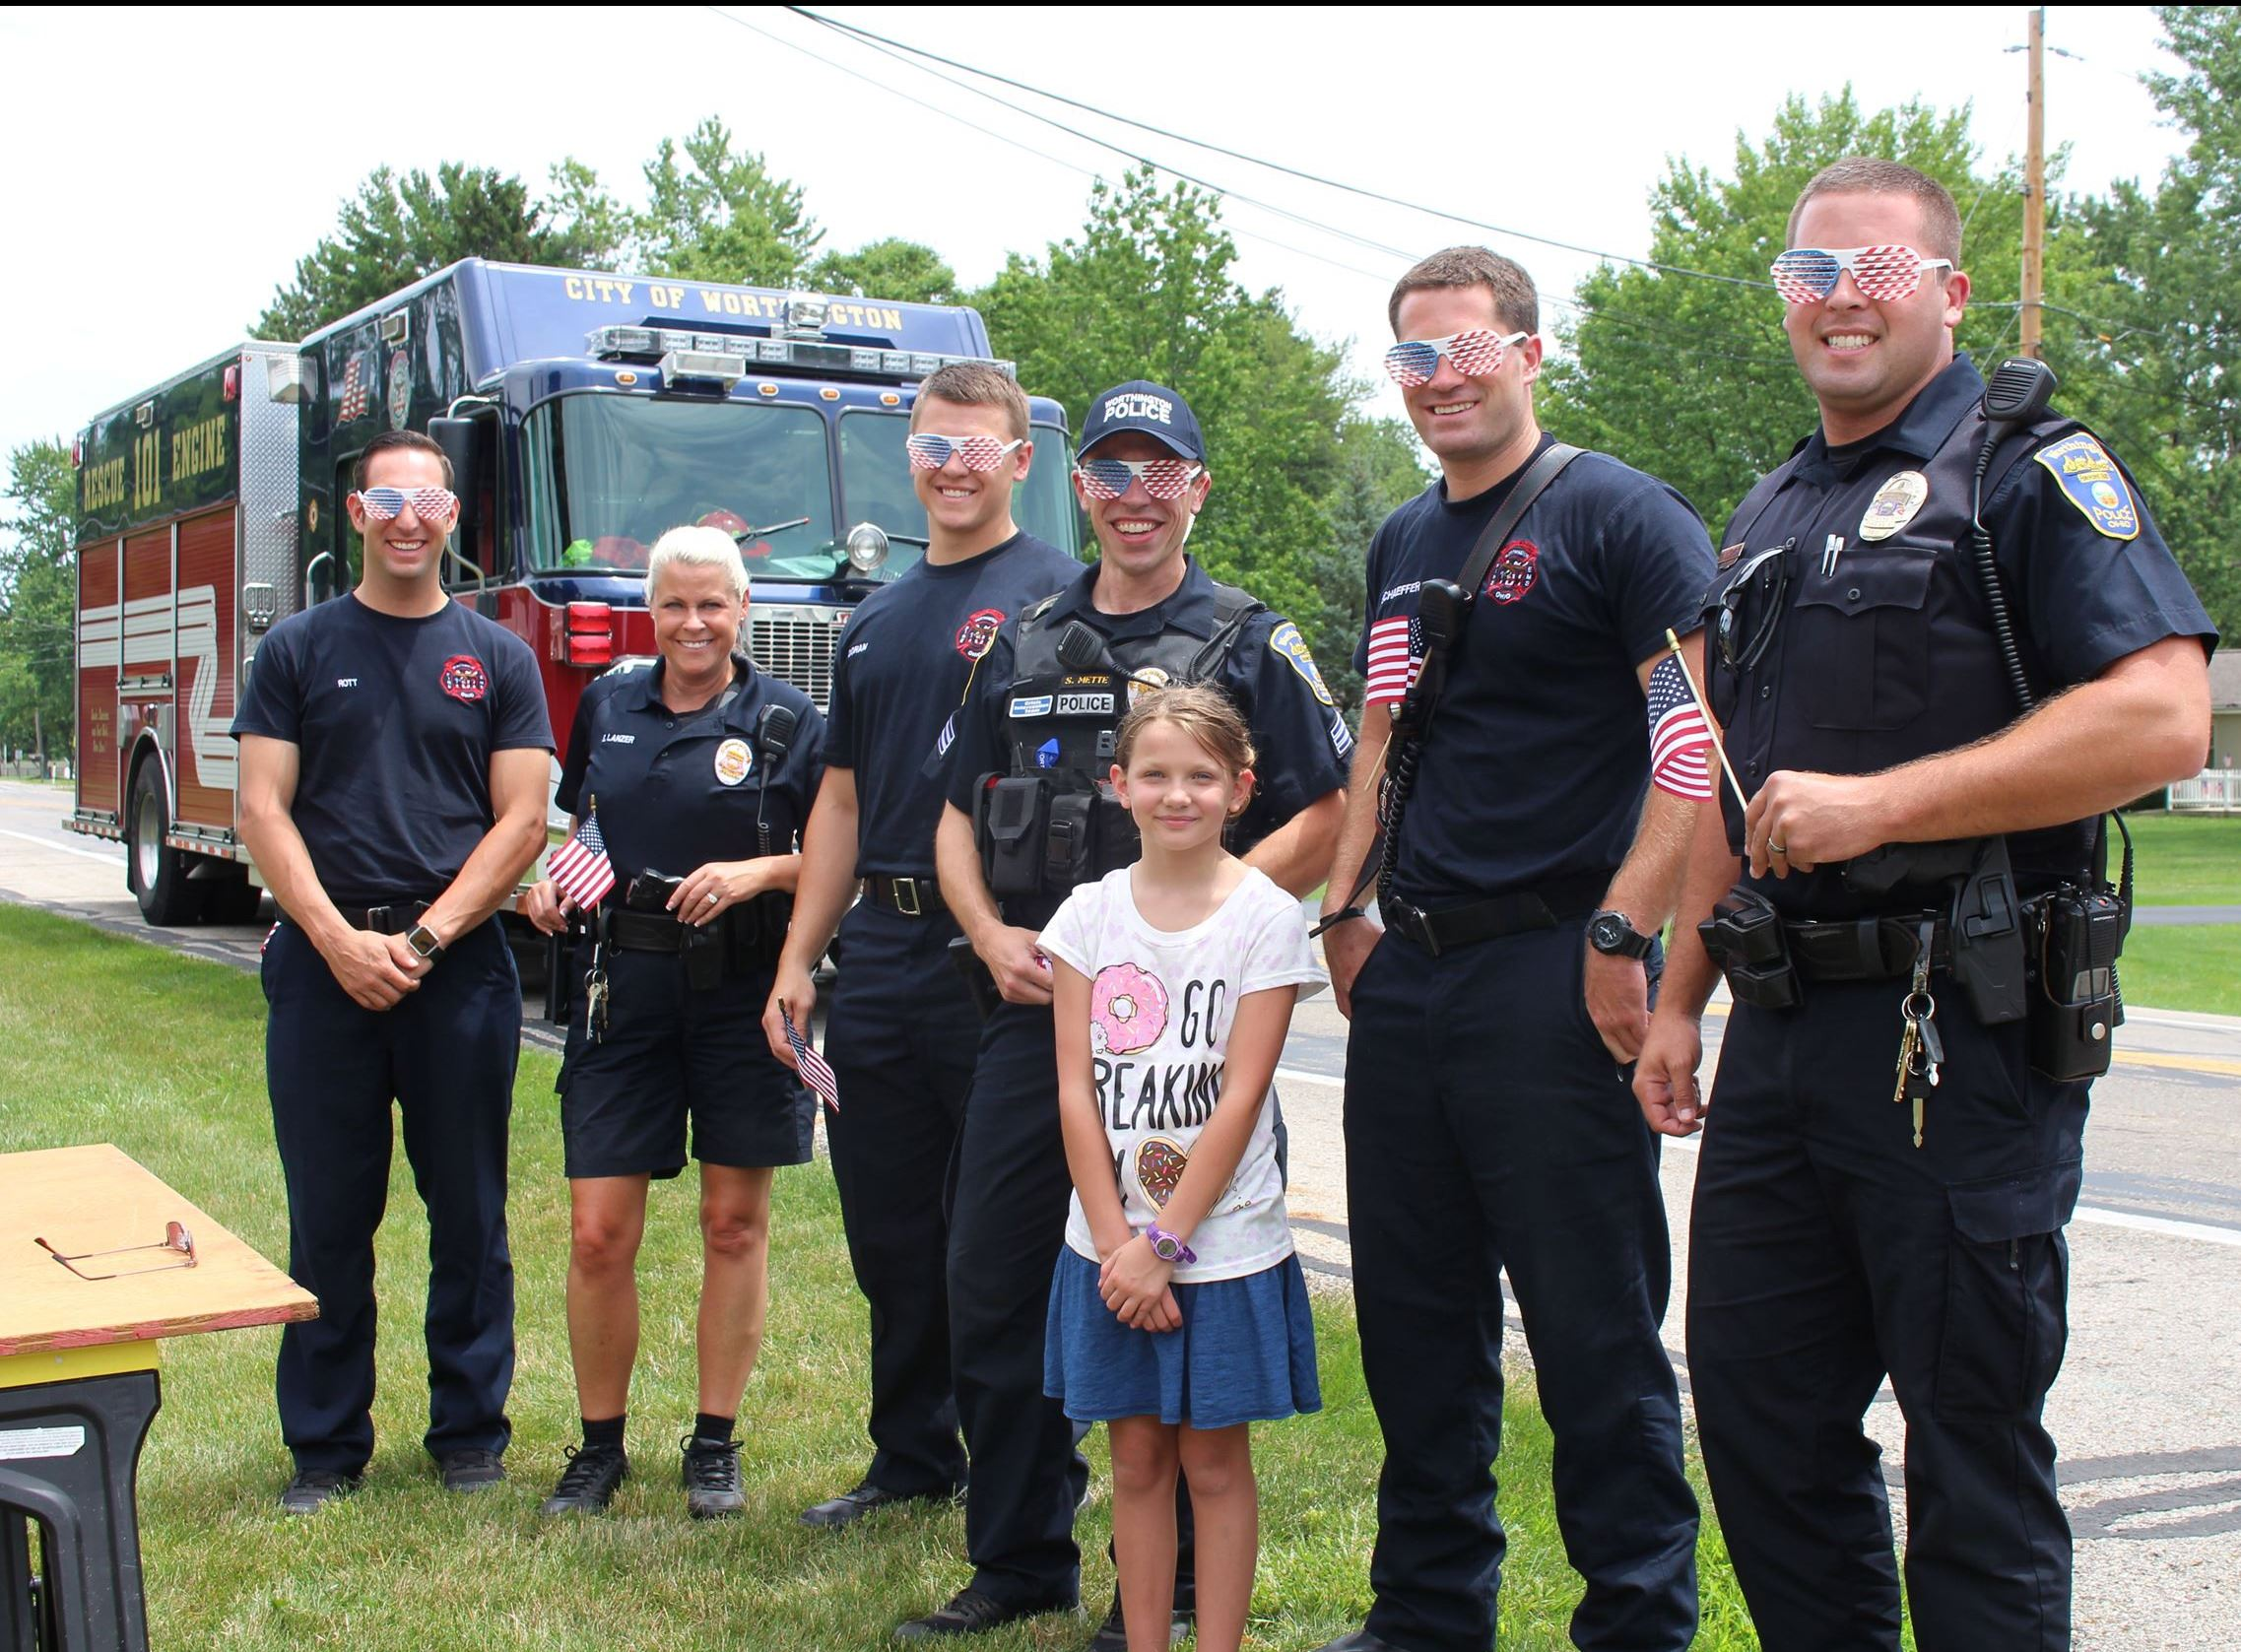 Officers and Firefighters at lemonade stand